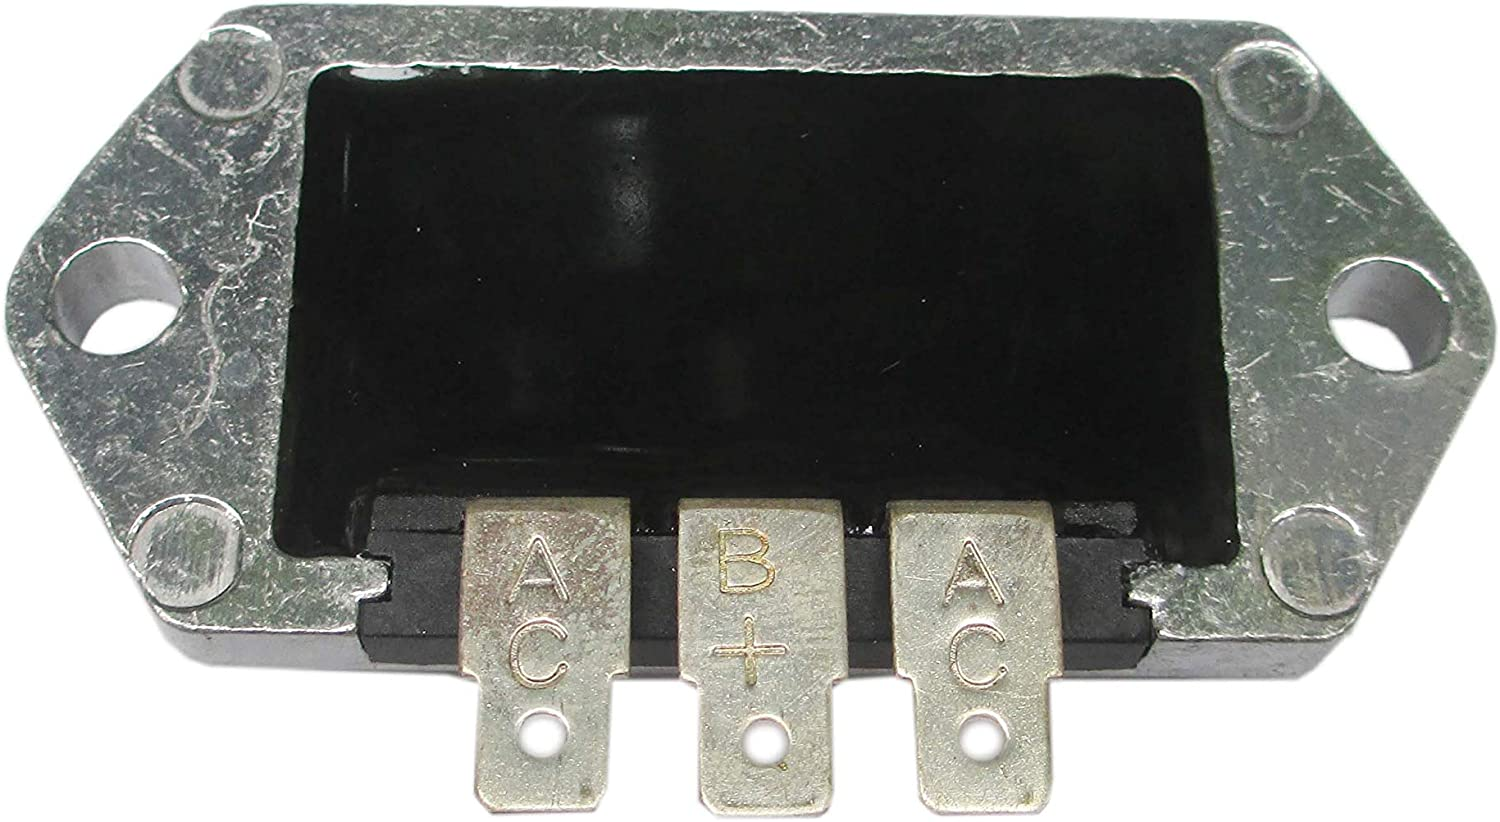 FLYPIG Voltage Regulator for Kohler 234812,237335,25 403 22-S,41 403 06,41 403 06-S 435-024 for Stens Part #